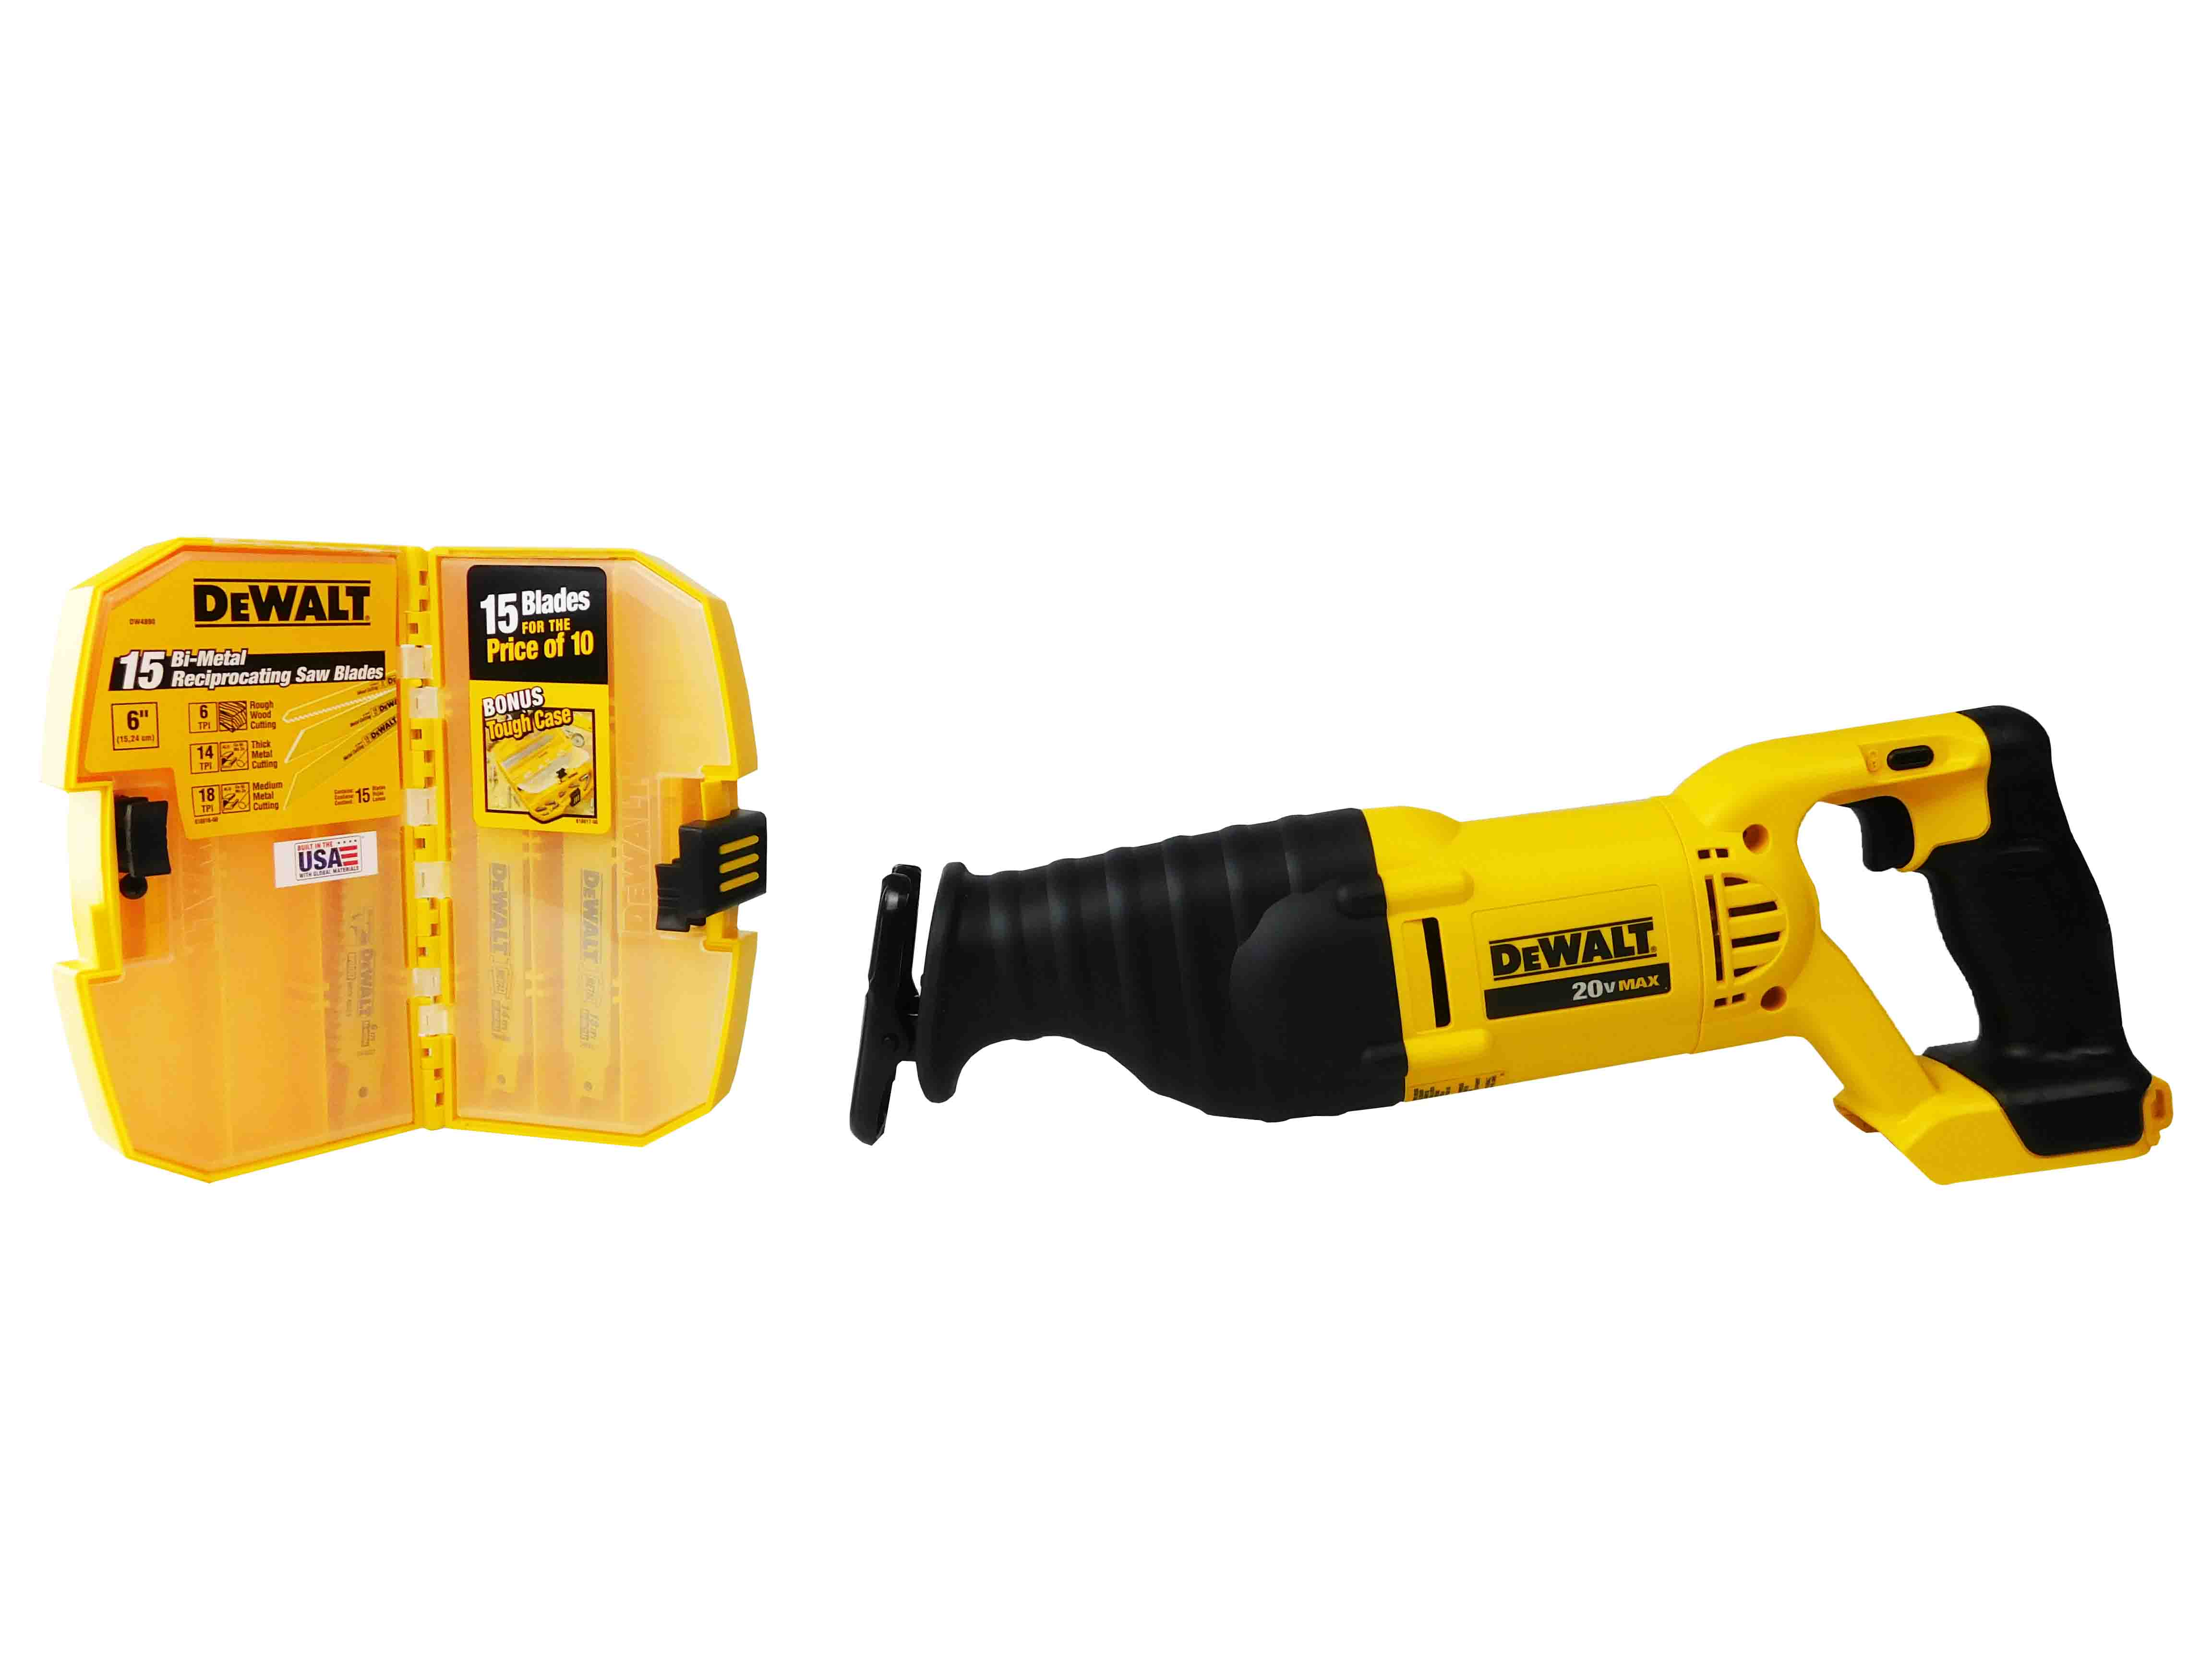 Dewalt-DCS381B-20VReciprocating-Saw-DW4890-15Pc-Reciprocating-Blades-image-1